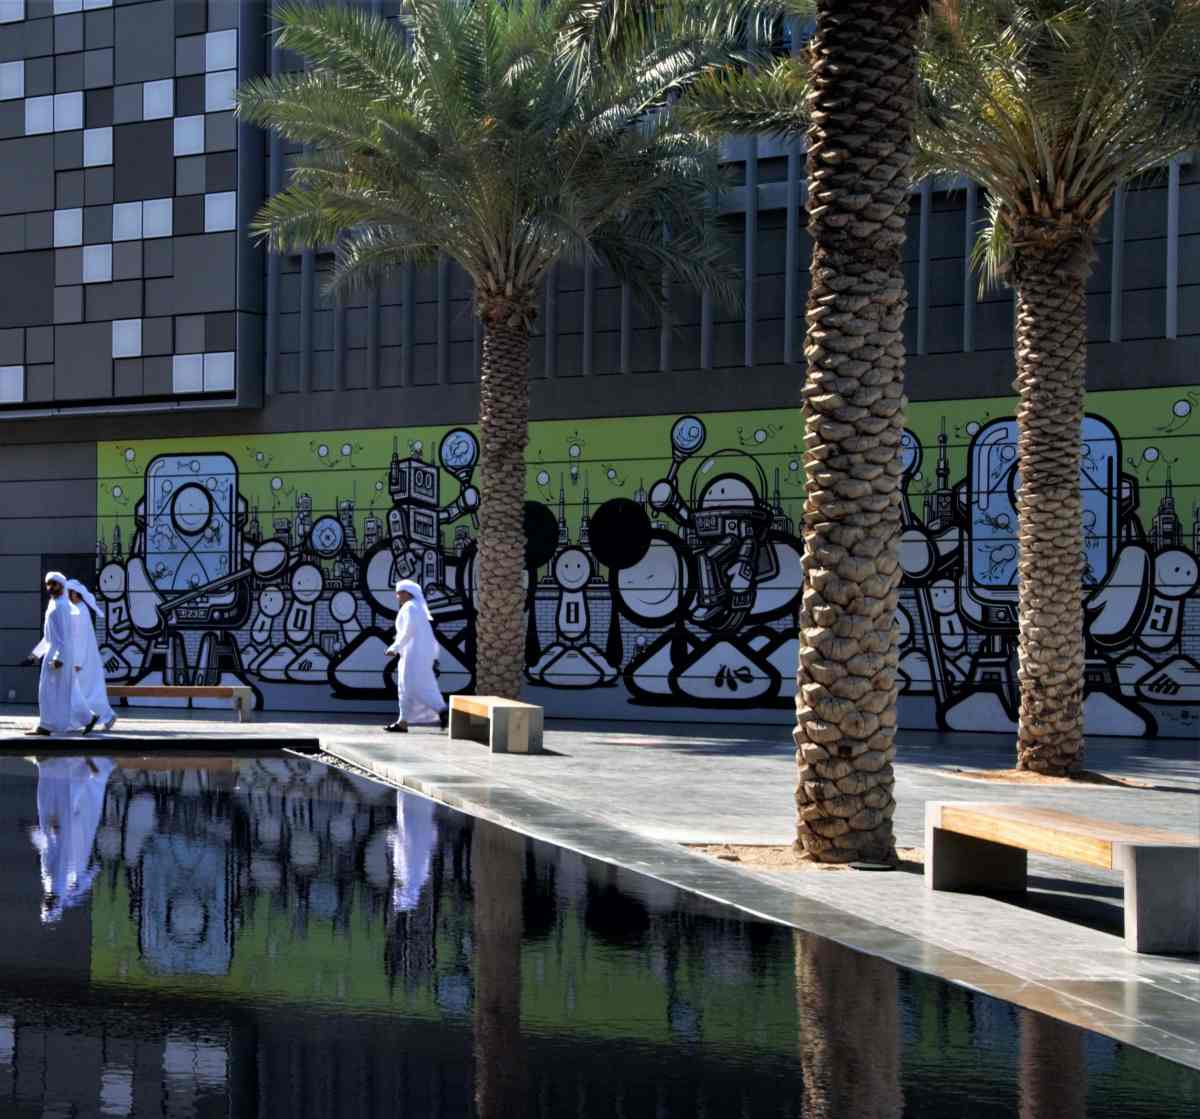 Finding Street Art in Dubai